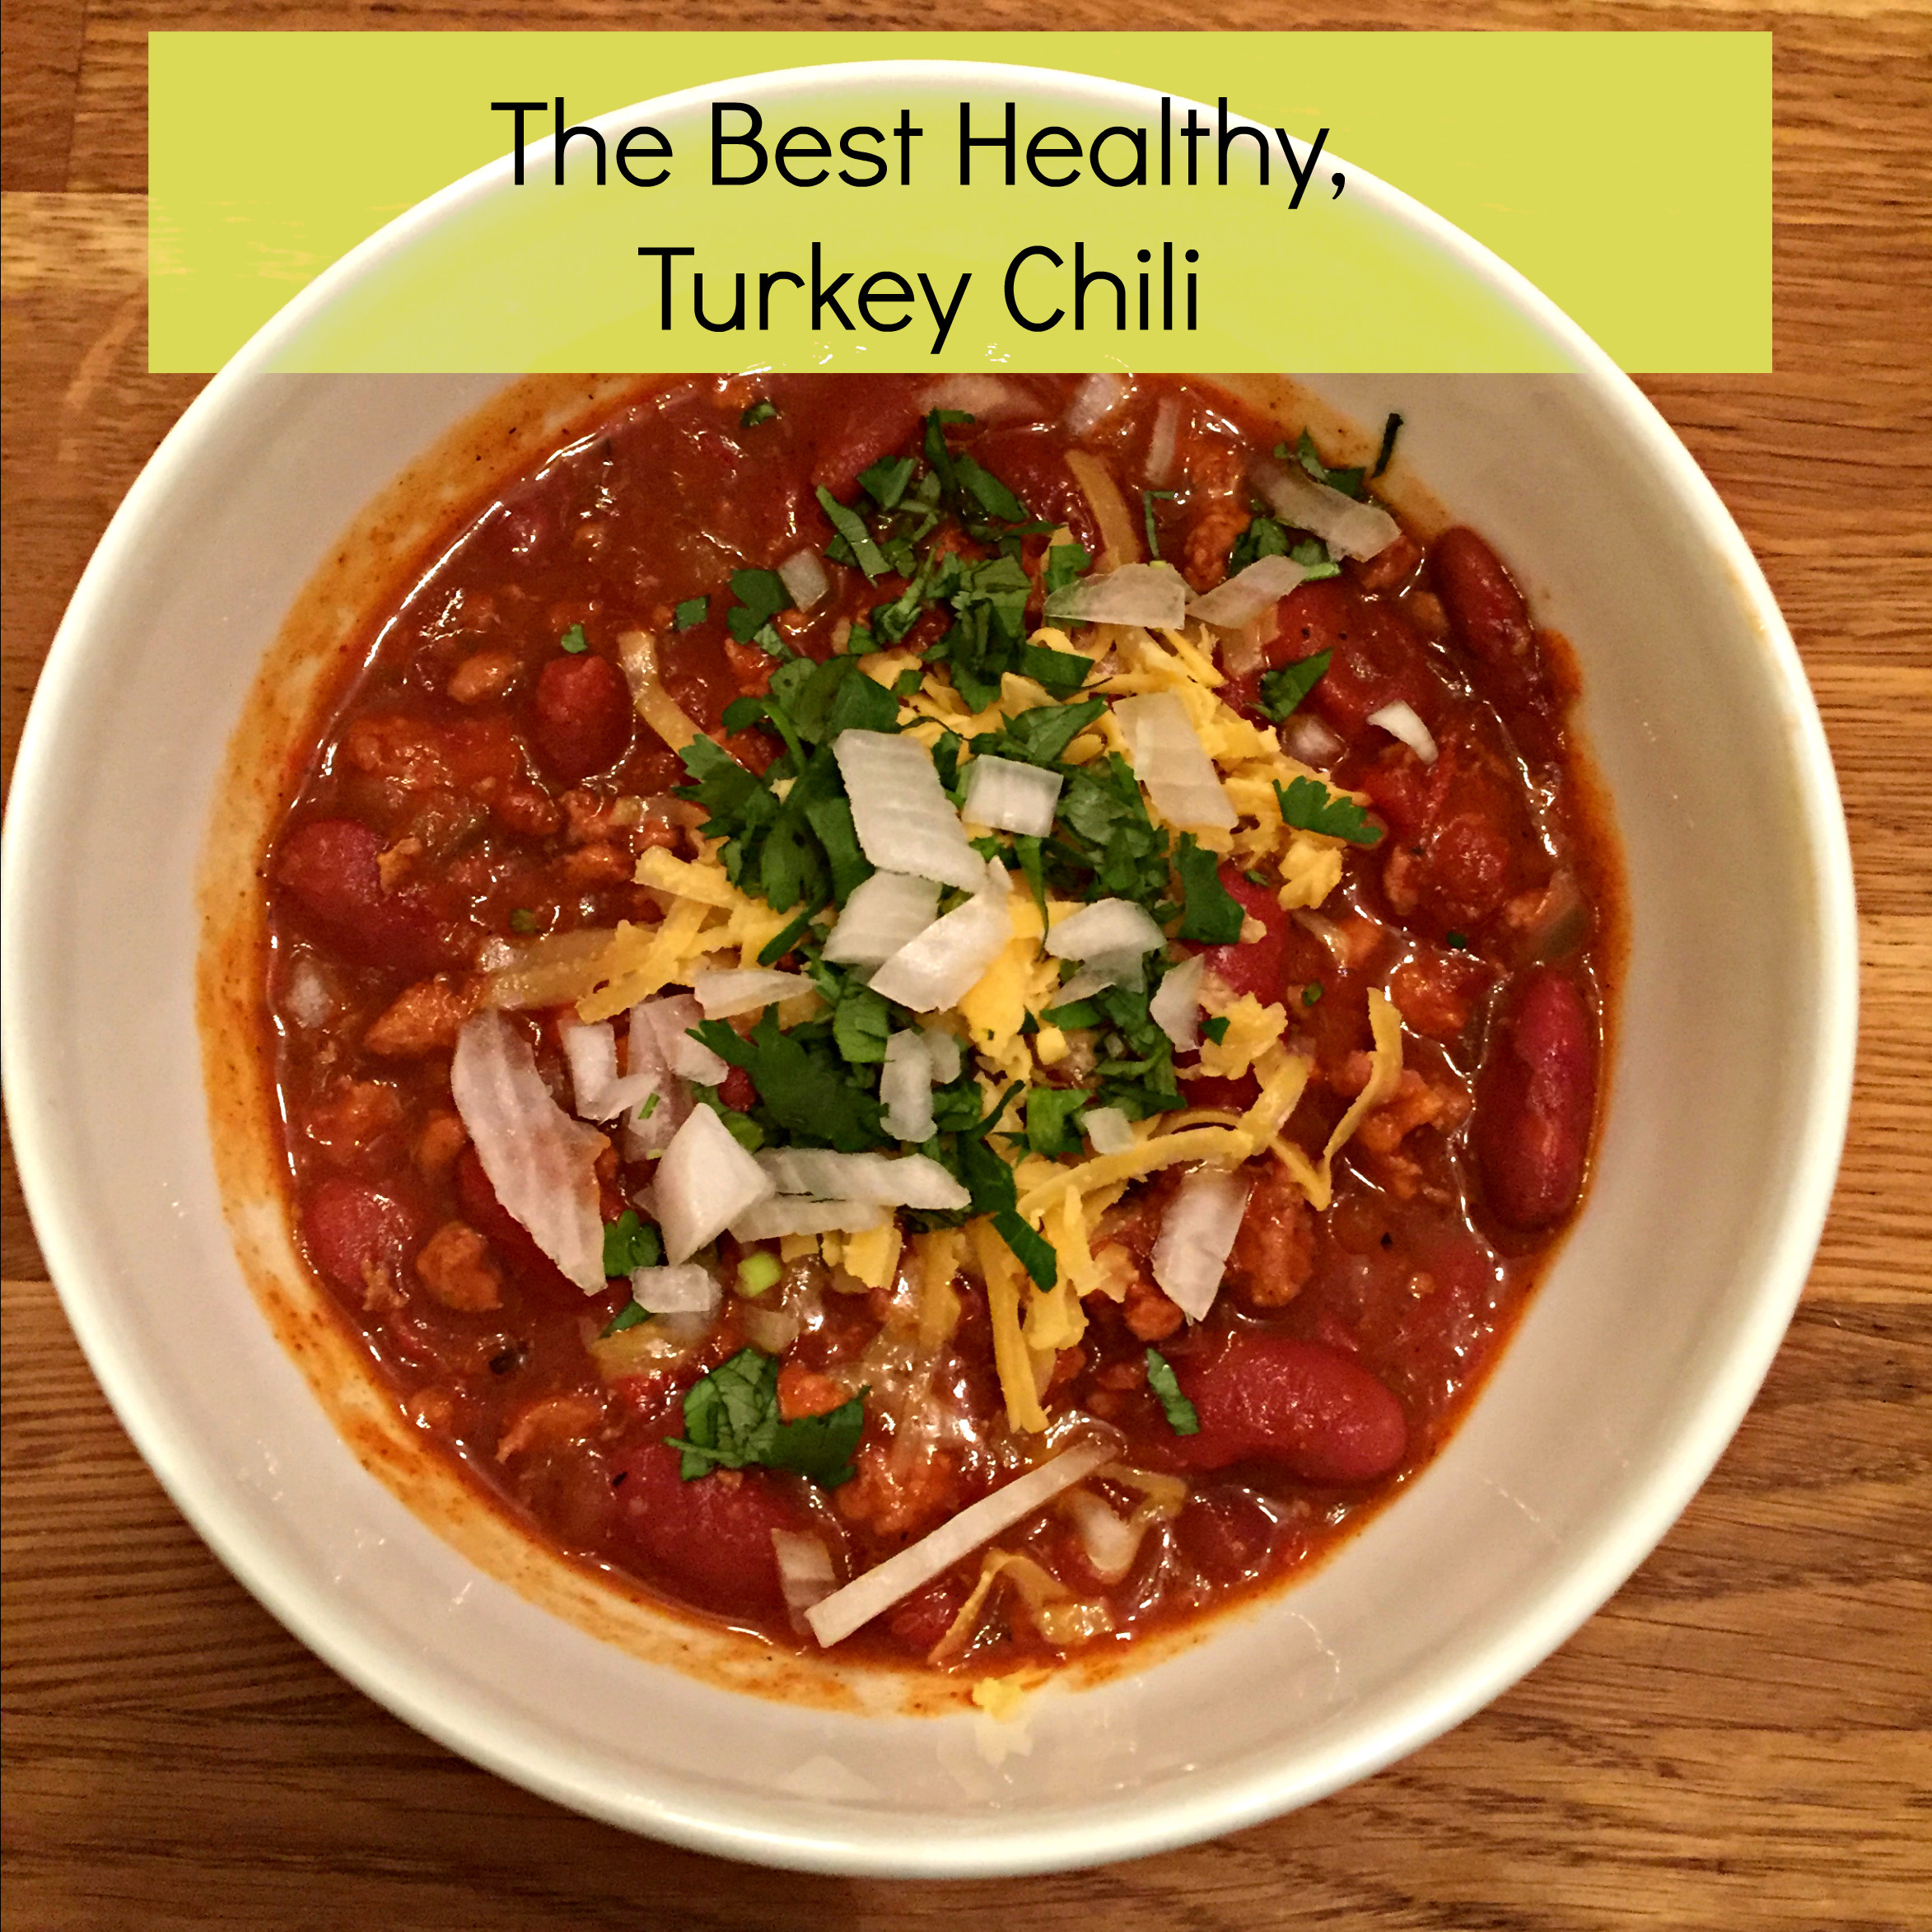 Healthy Turkey Chili Recipe 20 Of the Best Ideas for the Best Healthy Turkey Chili Recipe My Healthy Happier